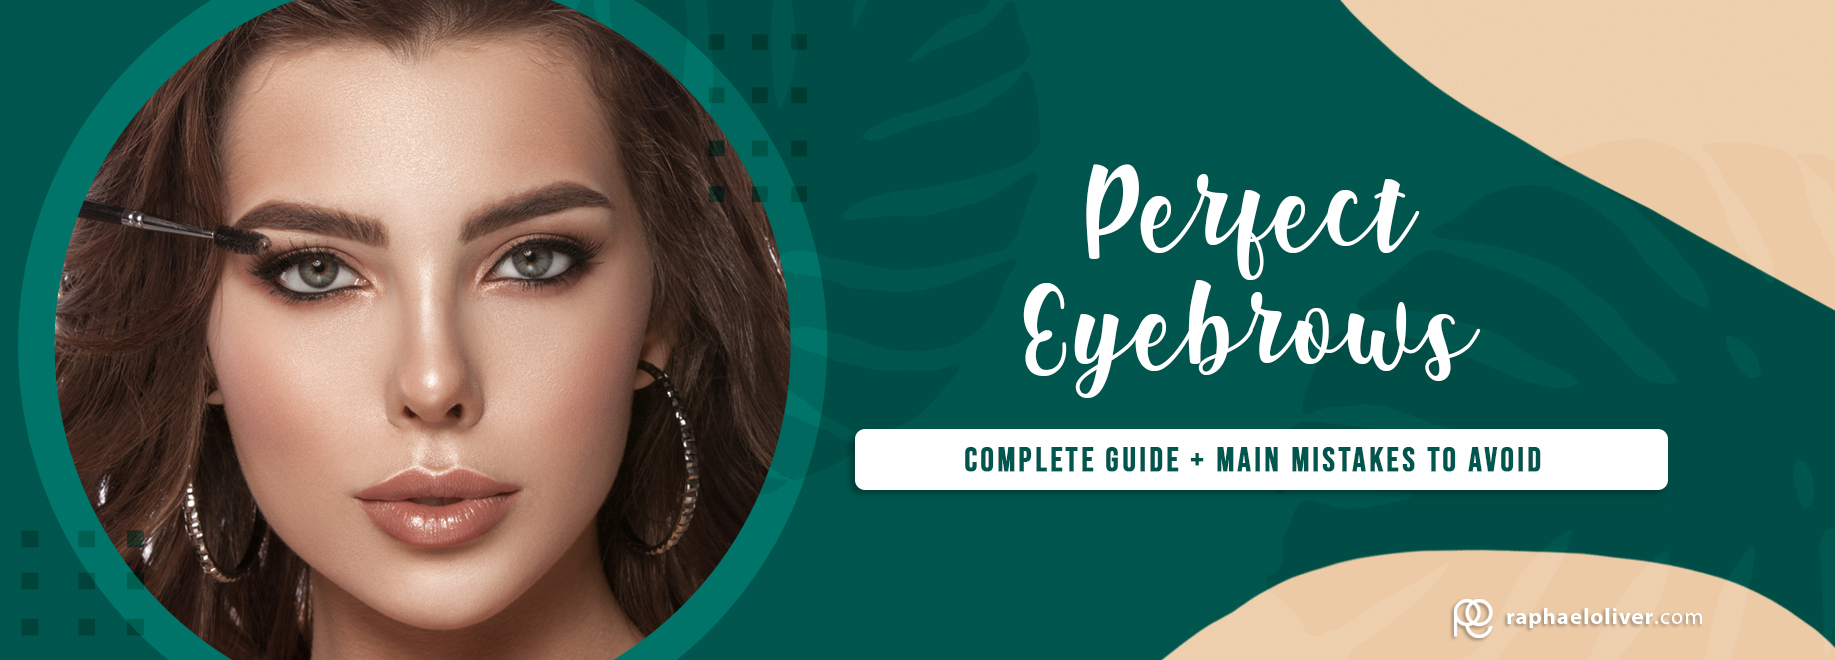 How to make perfect eyebrows with makeup + main mistakes to avoid